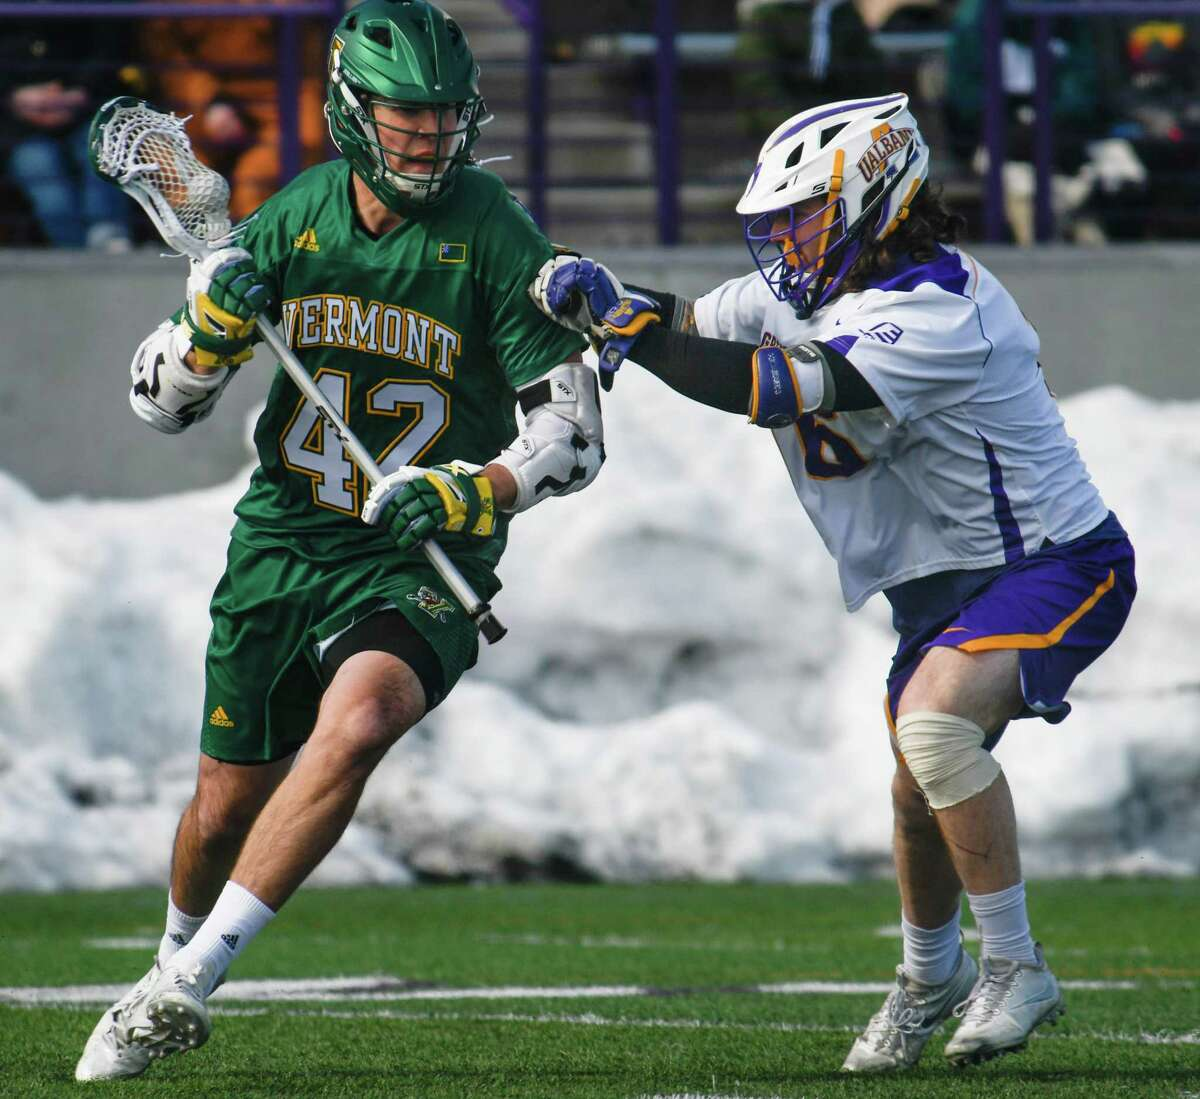 UAlbany's Nate Siekierski pushes Vermont's Dawes Milchling during a game at Casey Stadium on Saturday, Mar. 17, 2018, in Albany, N.Y. (Jenn March, Special to the Times Union)